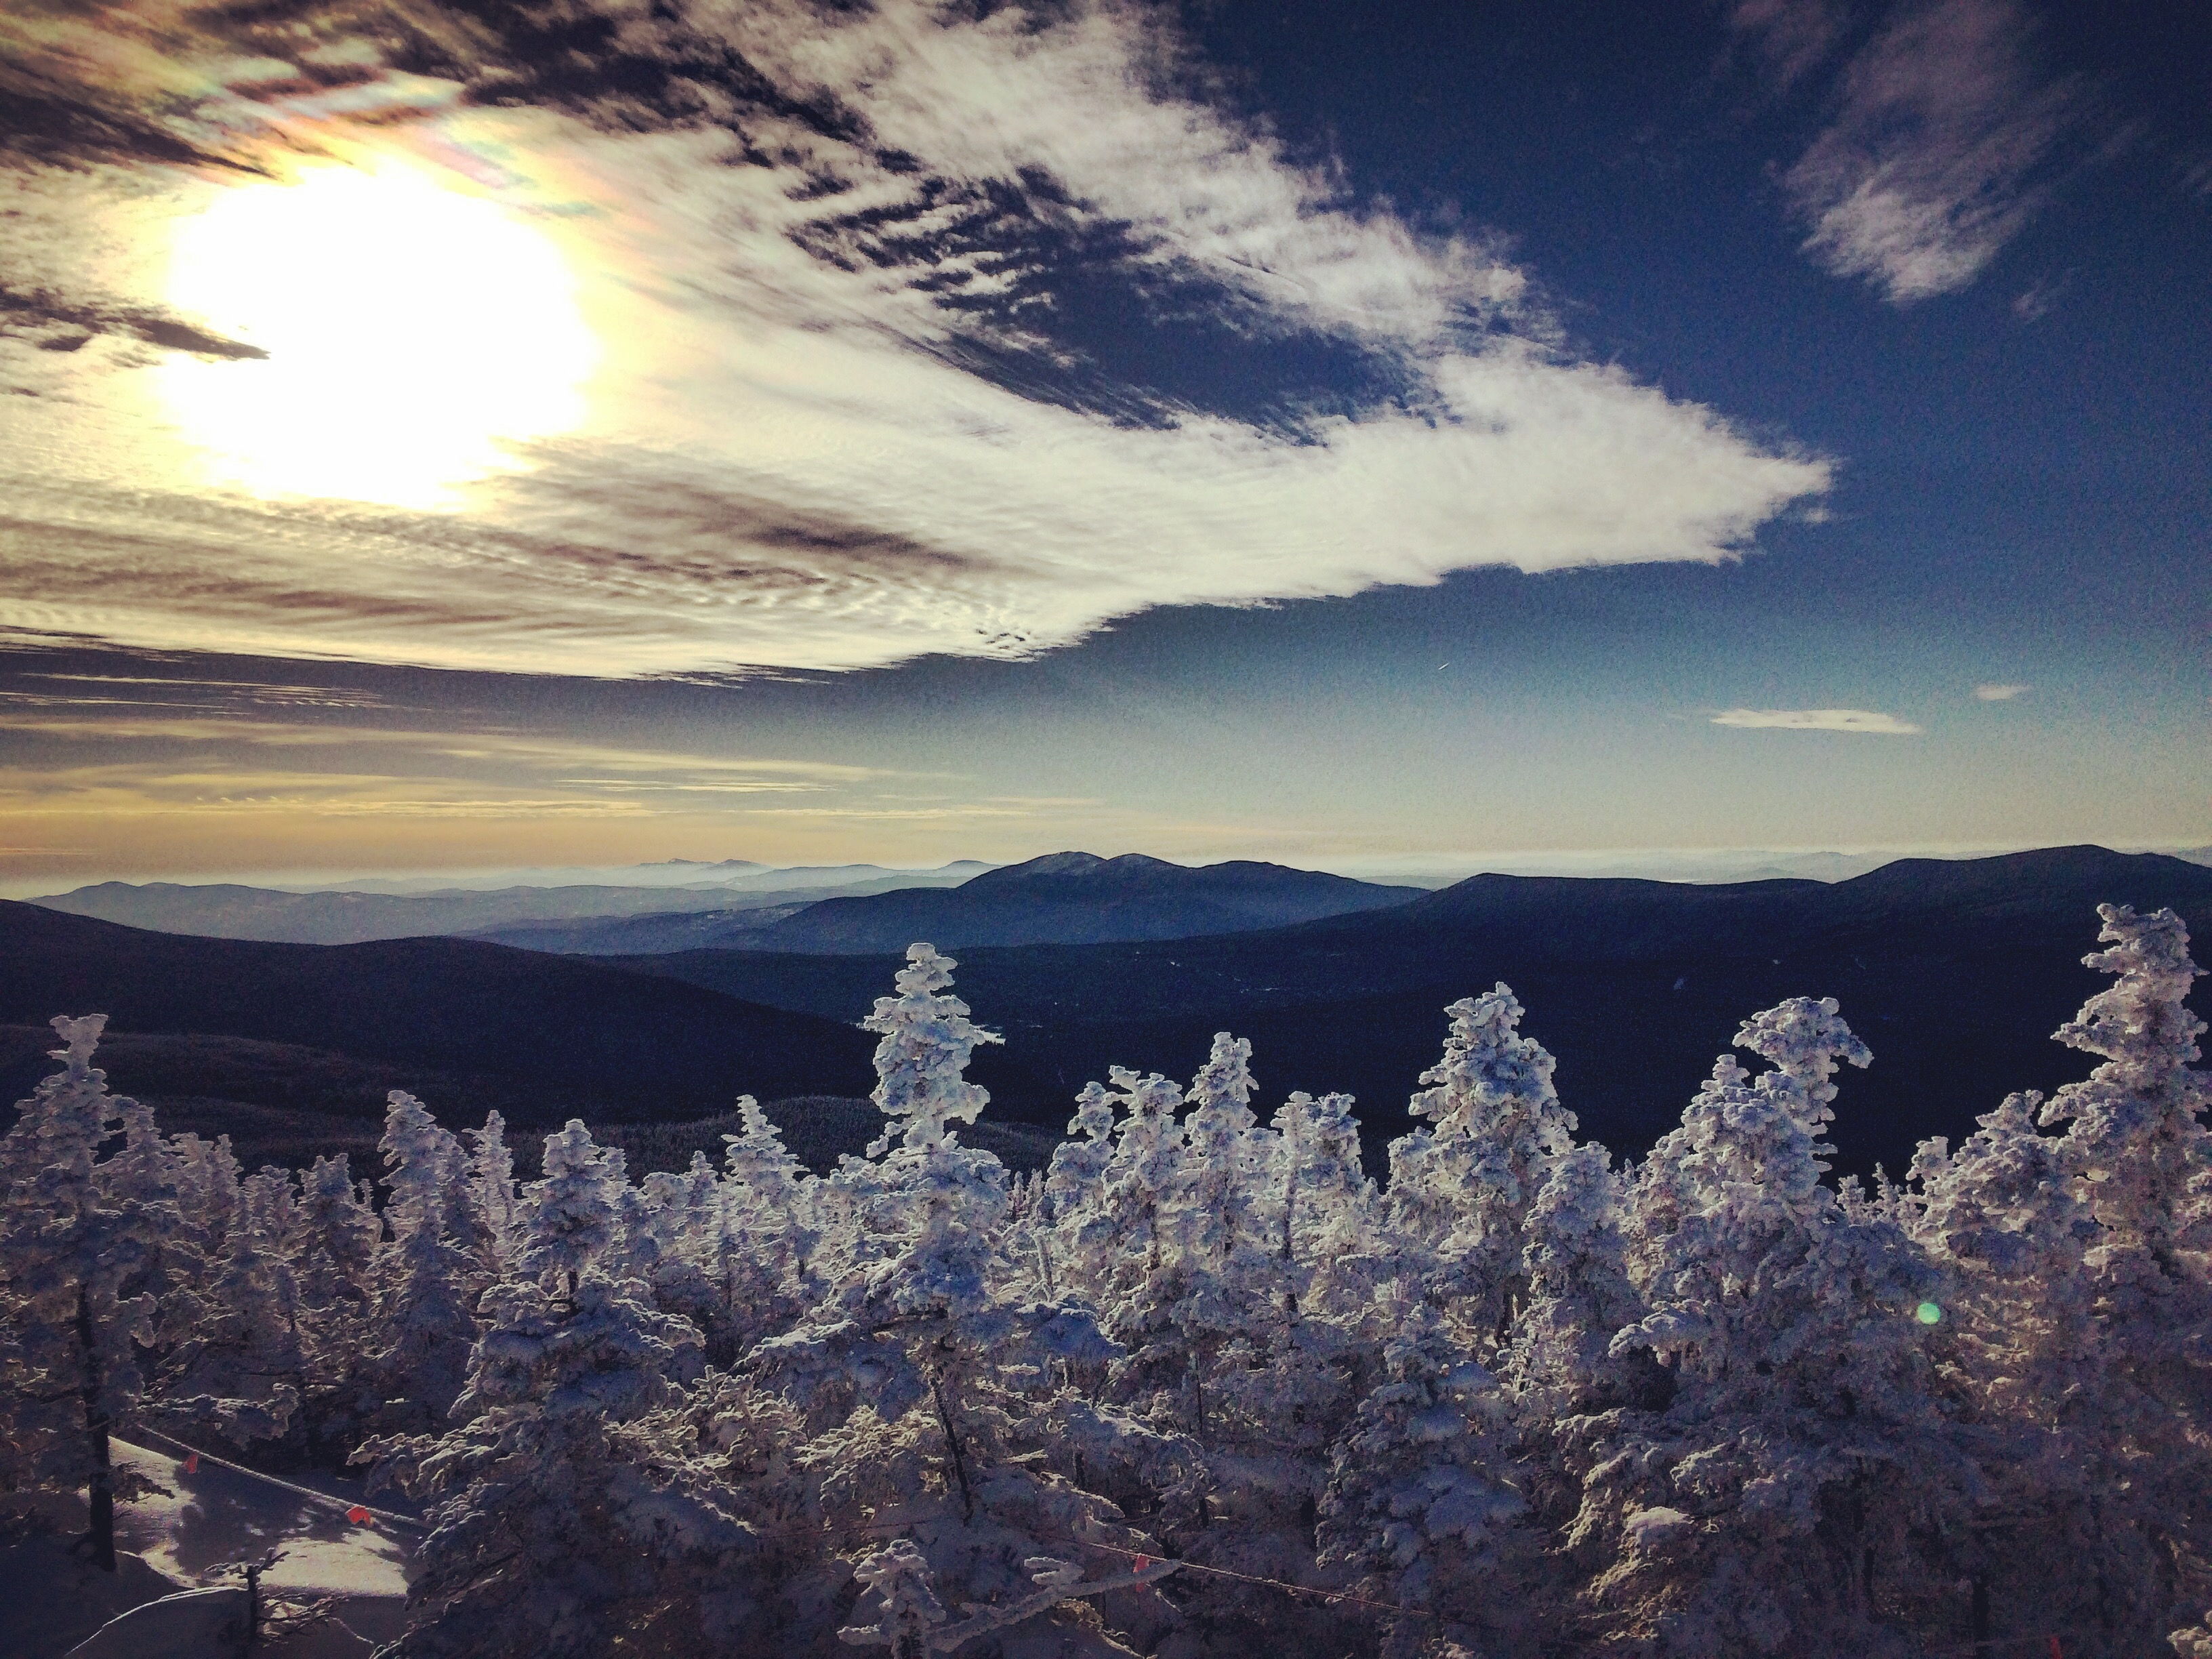 a photo overlooking mountains of Maine on Sugarloaf Mountain in winter